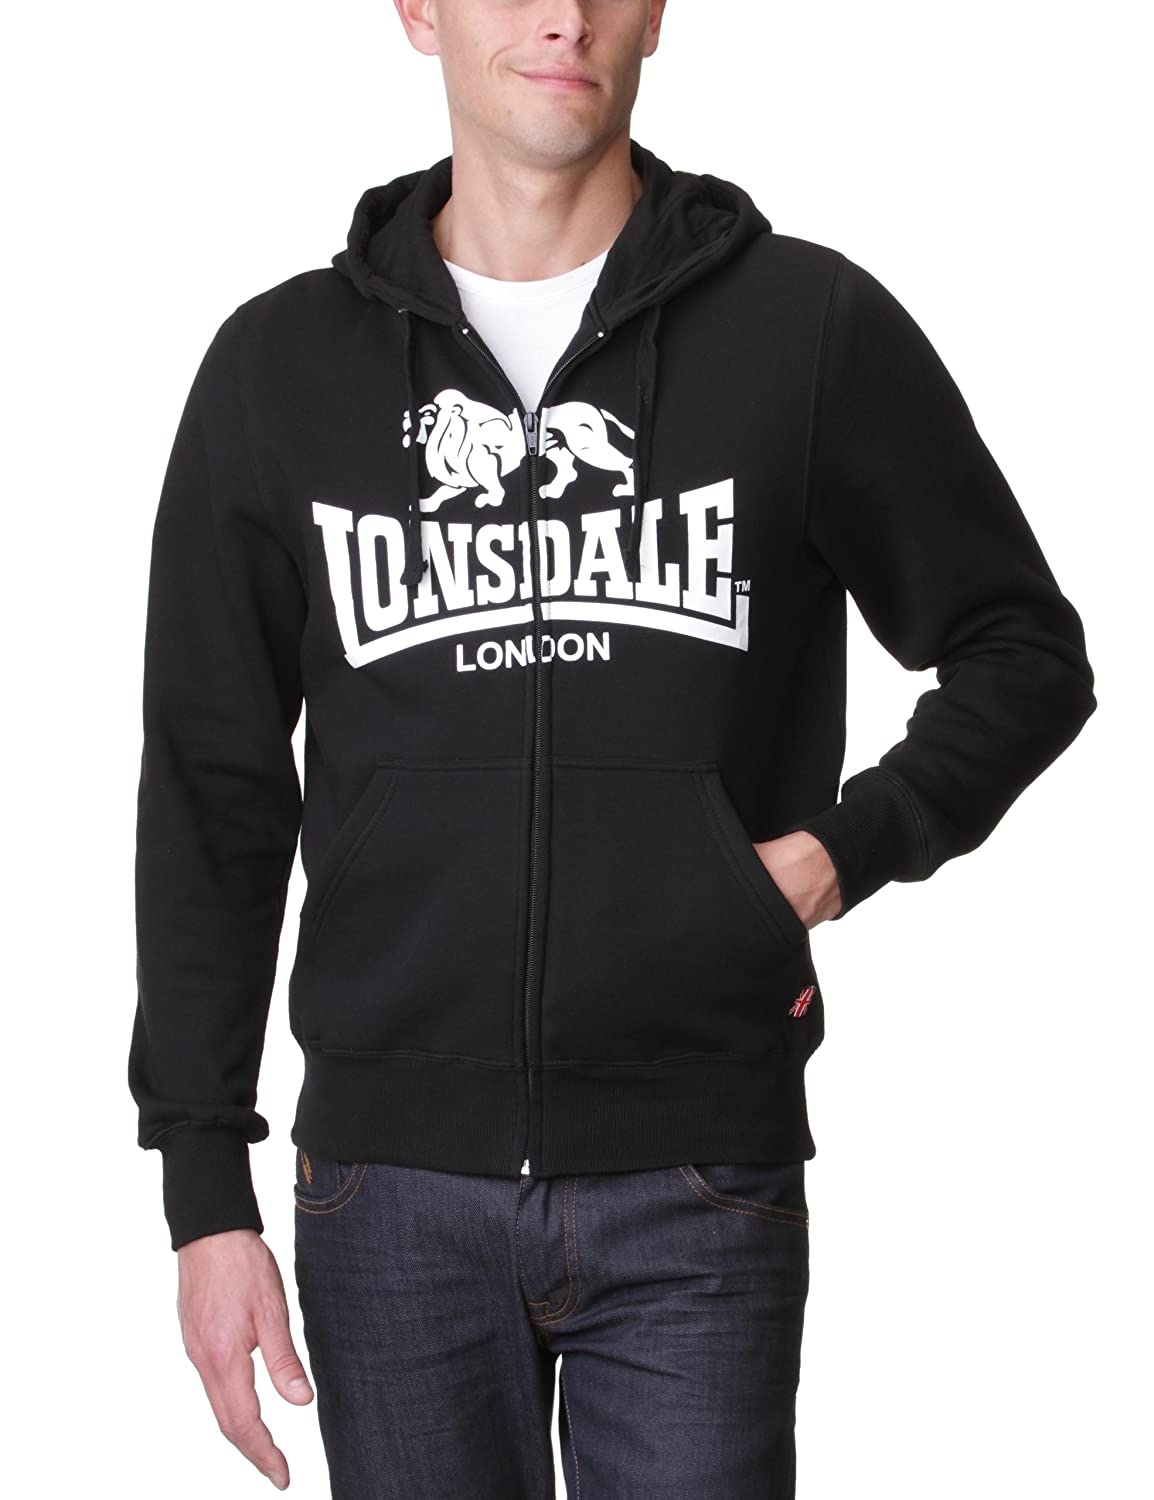 02b432e2deb61 Lonsdale Sweatshirt Slim Fit Hooded Zip Krafty Sweat-Shirt Homme:  Amazon.fr: Vêtements et accessoires